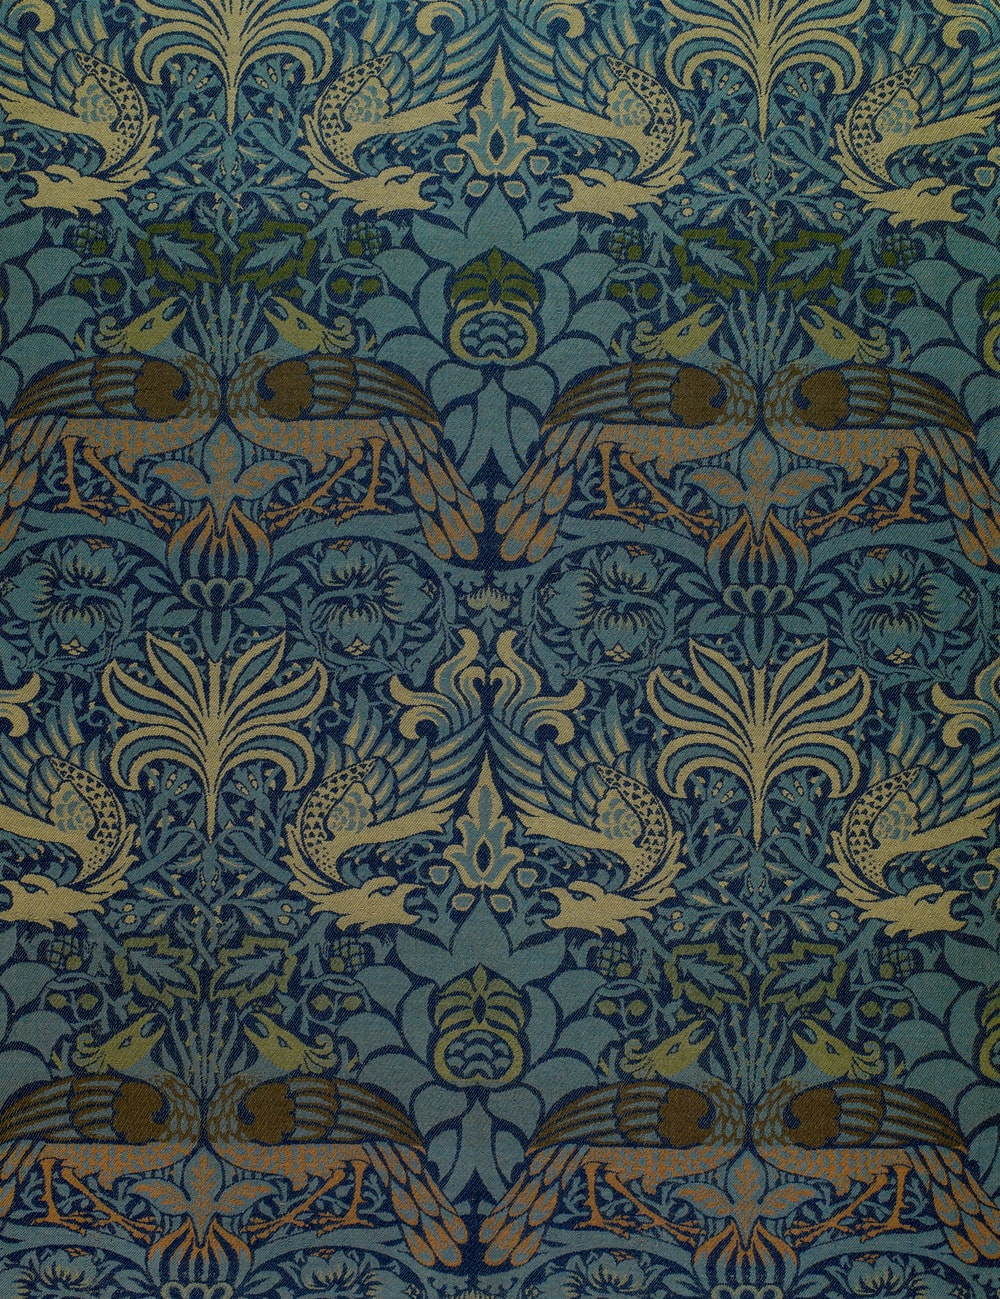 blue and white floral textile